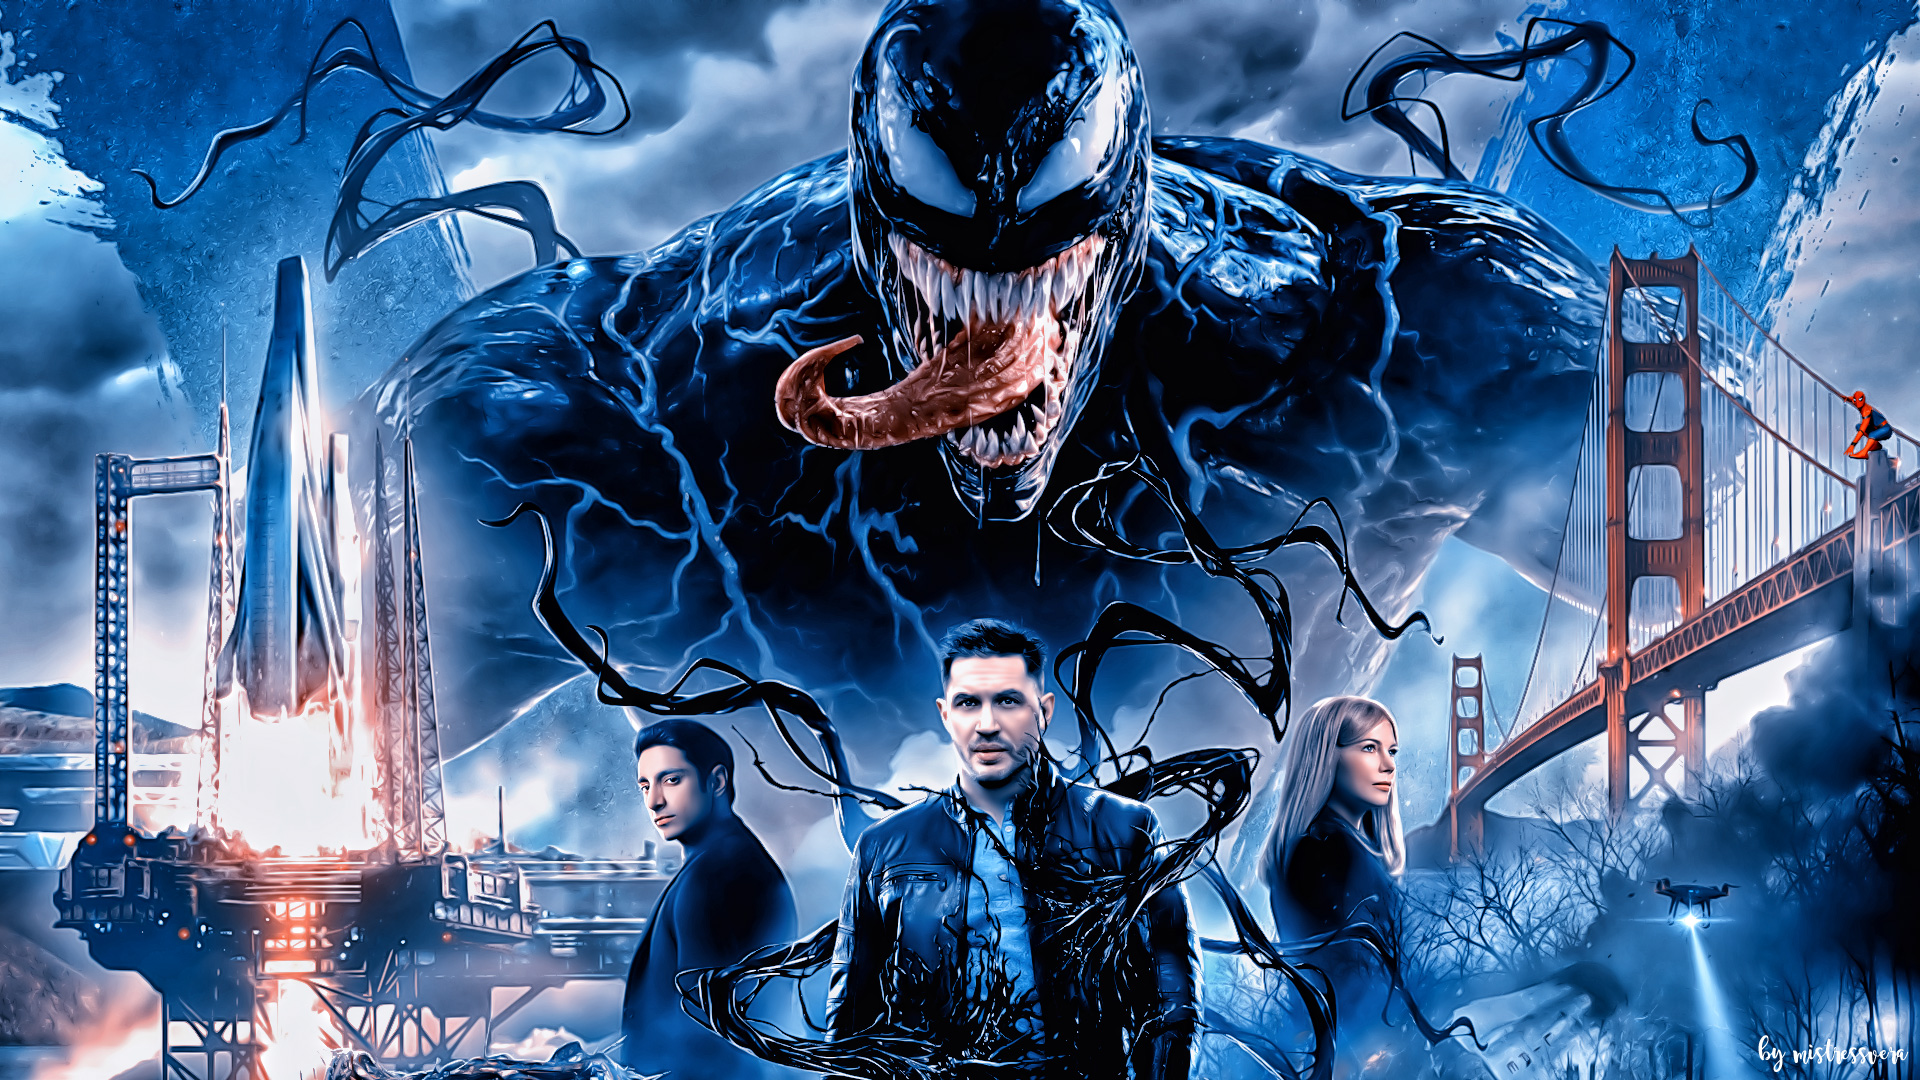 Venom Movie 2018 Hd Hd Movies 4k Wallpapers Images Backgrounds